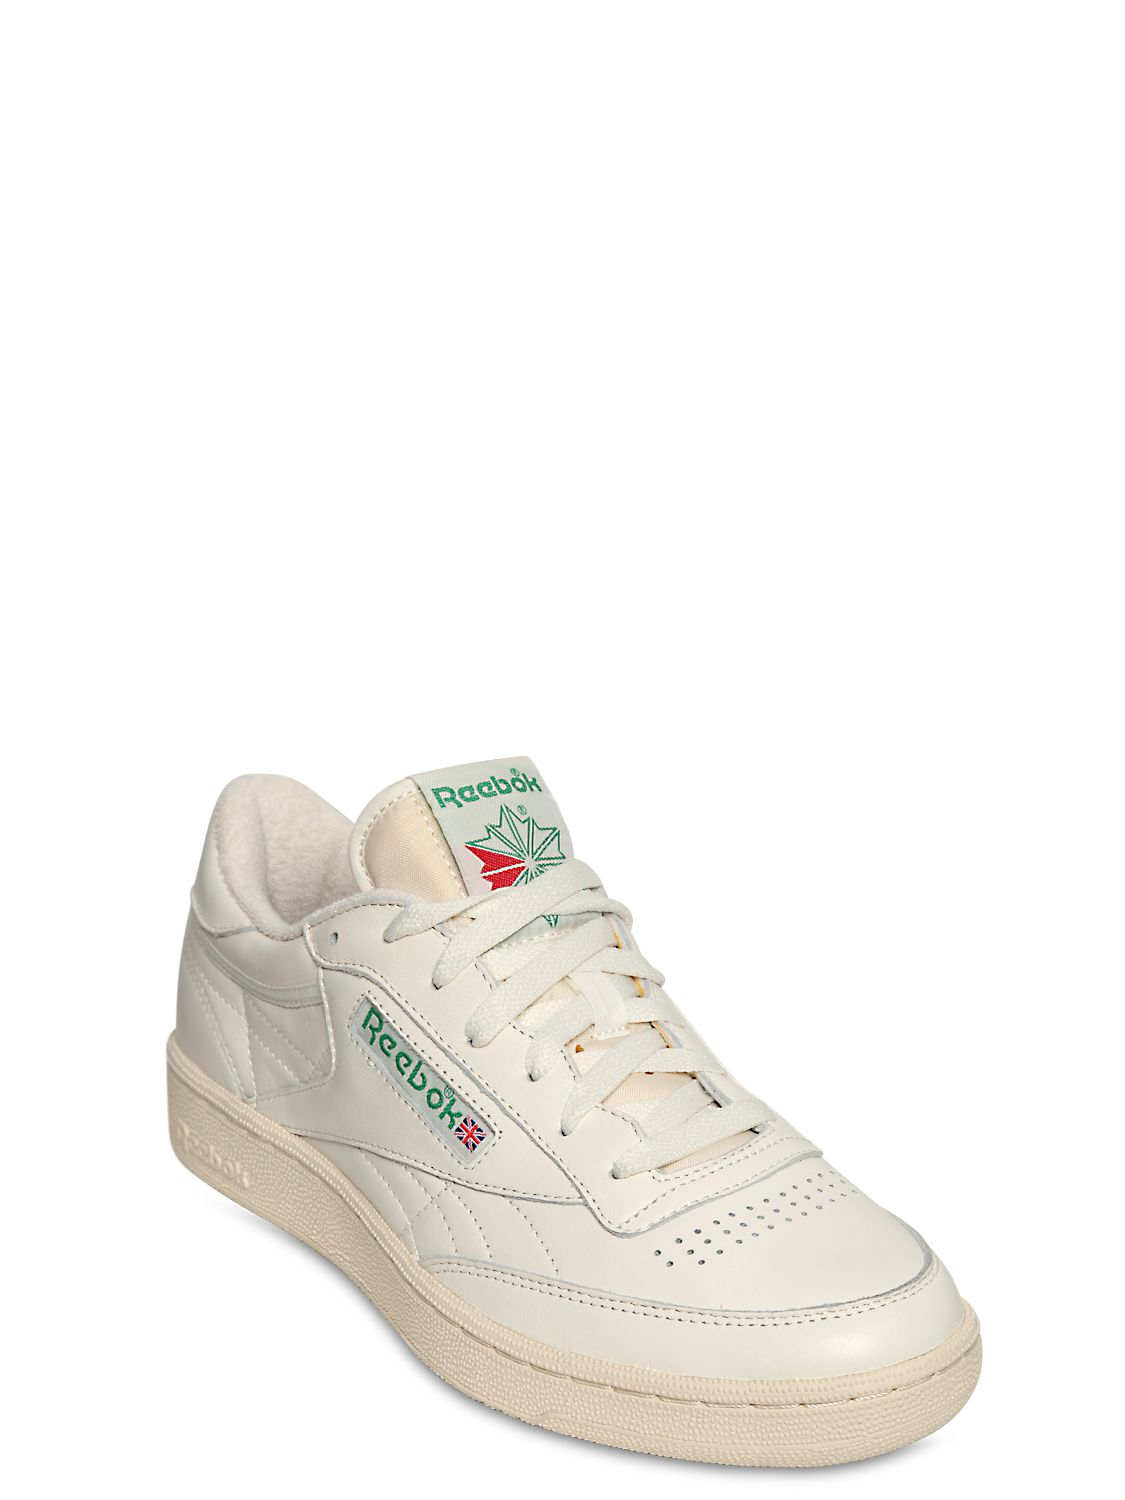 reebok classic high top tennis shoes